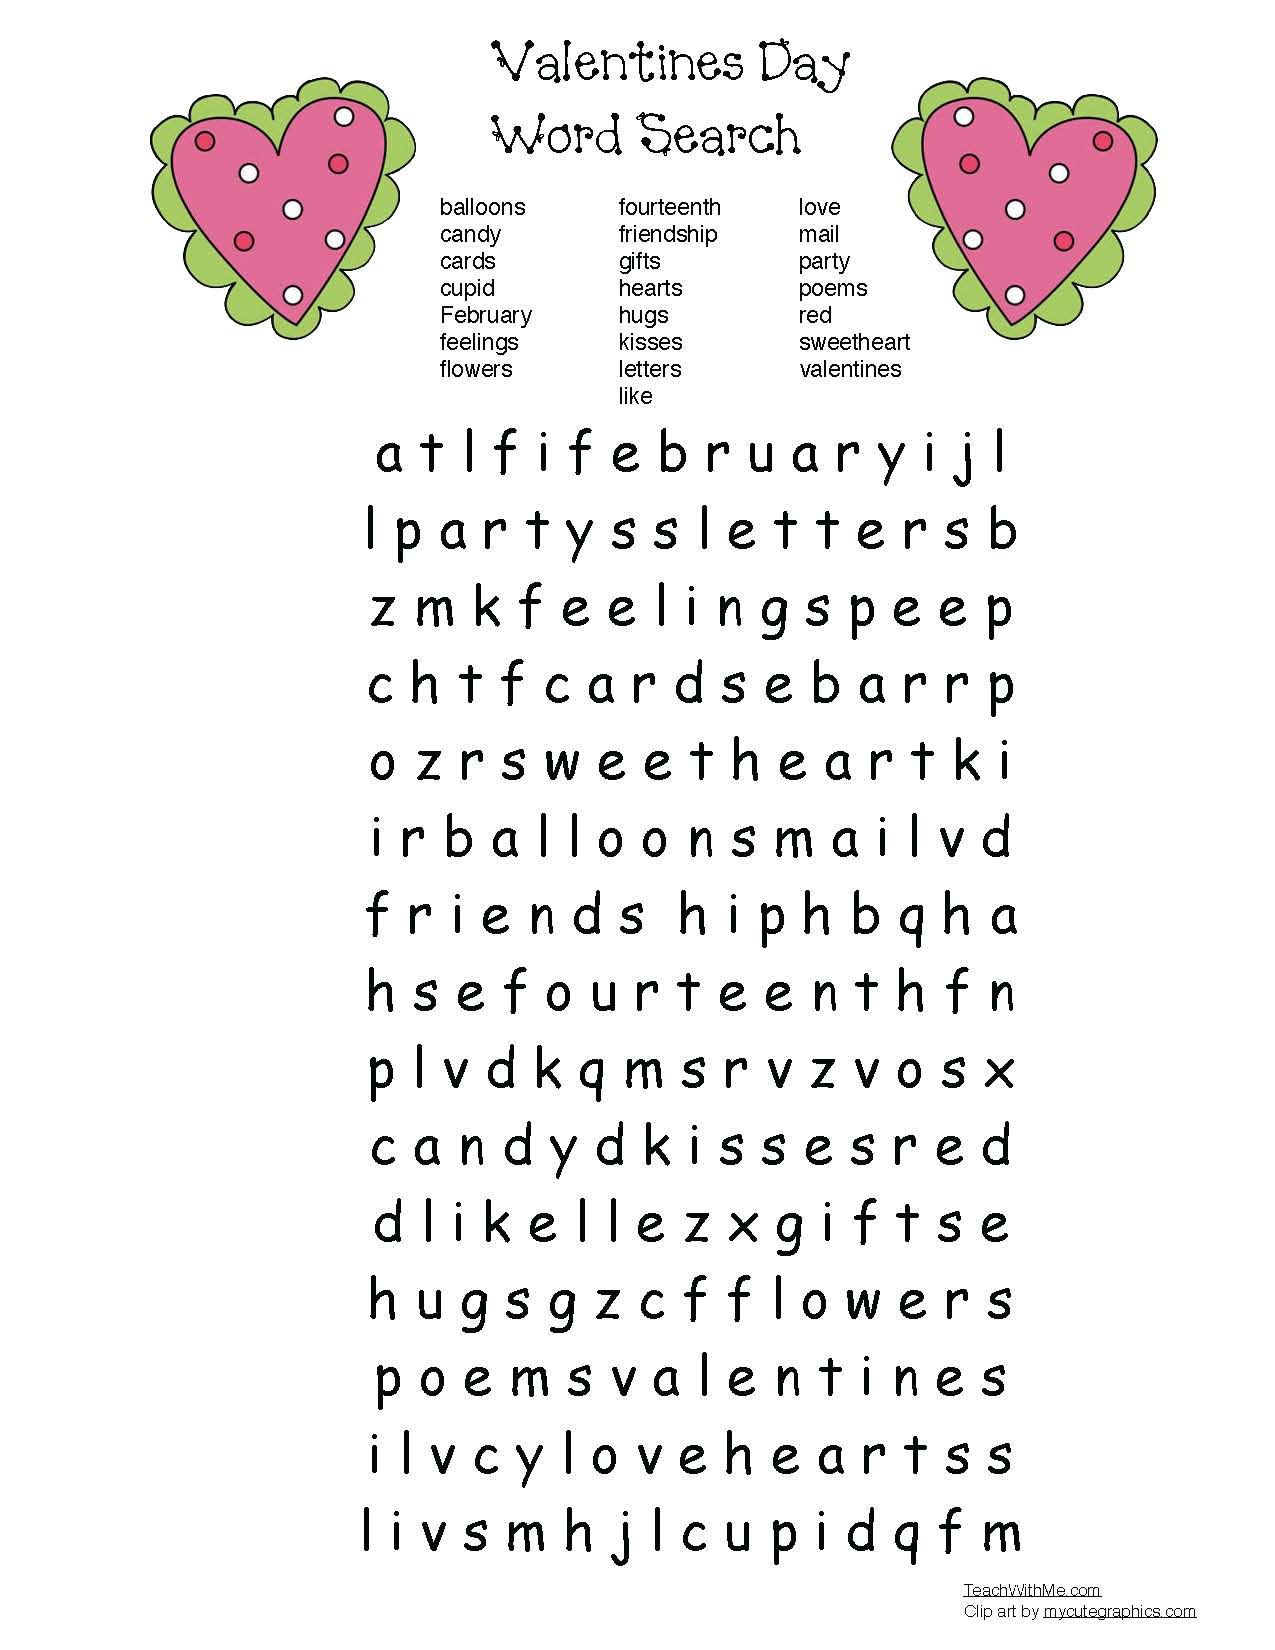 candy heart activities, daily 5 word work activities for february, daily 5 activities for valentines day, candy heart games, candy heart centers, color word activities, contraction activities, valentines day certificates, 100 ways to say I love you, valentine word searches, valentine word finds, valentine crossword puzzles, how many words can you make using the letters in valentines